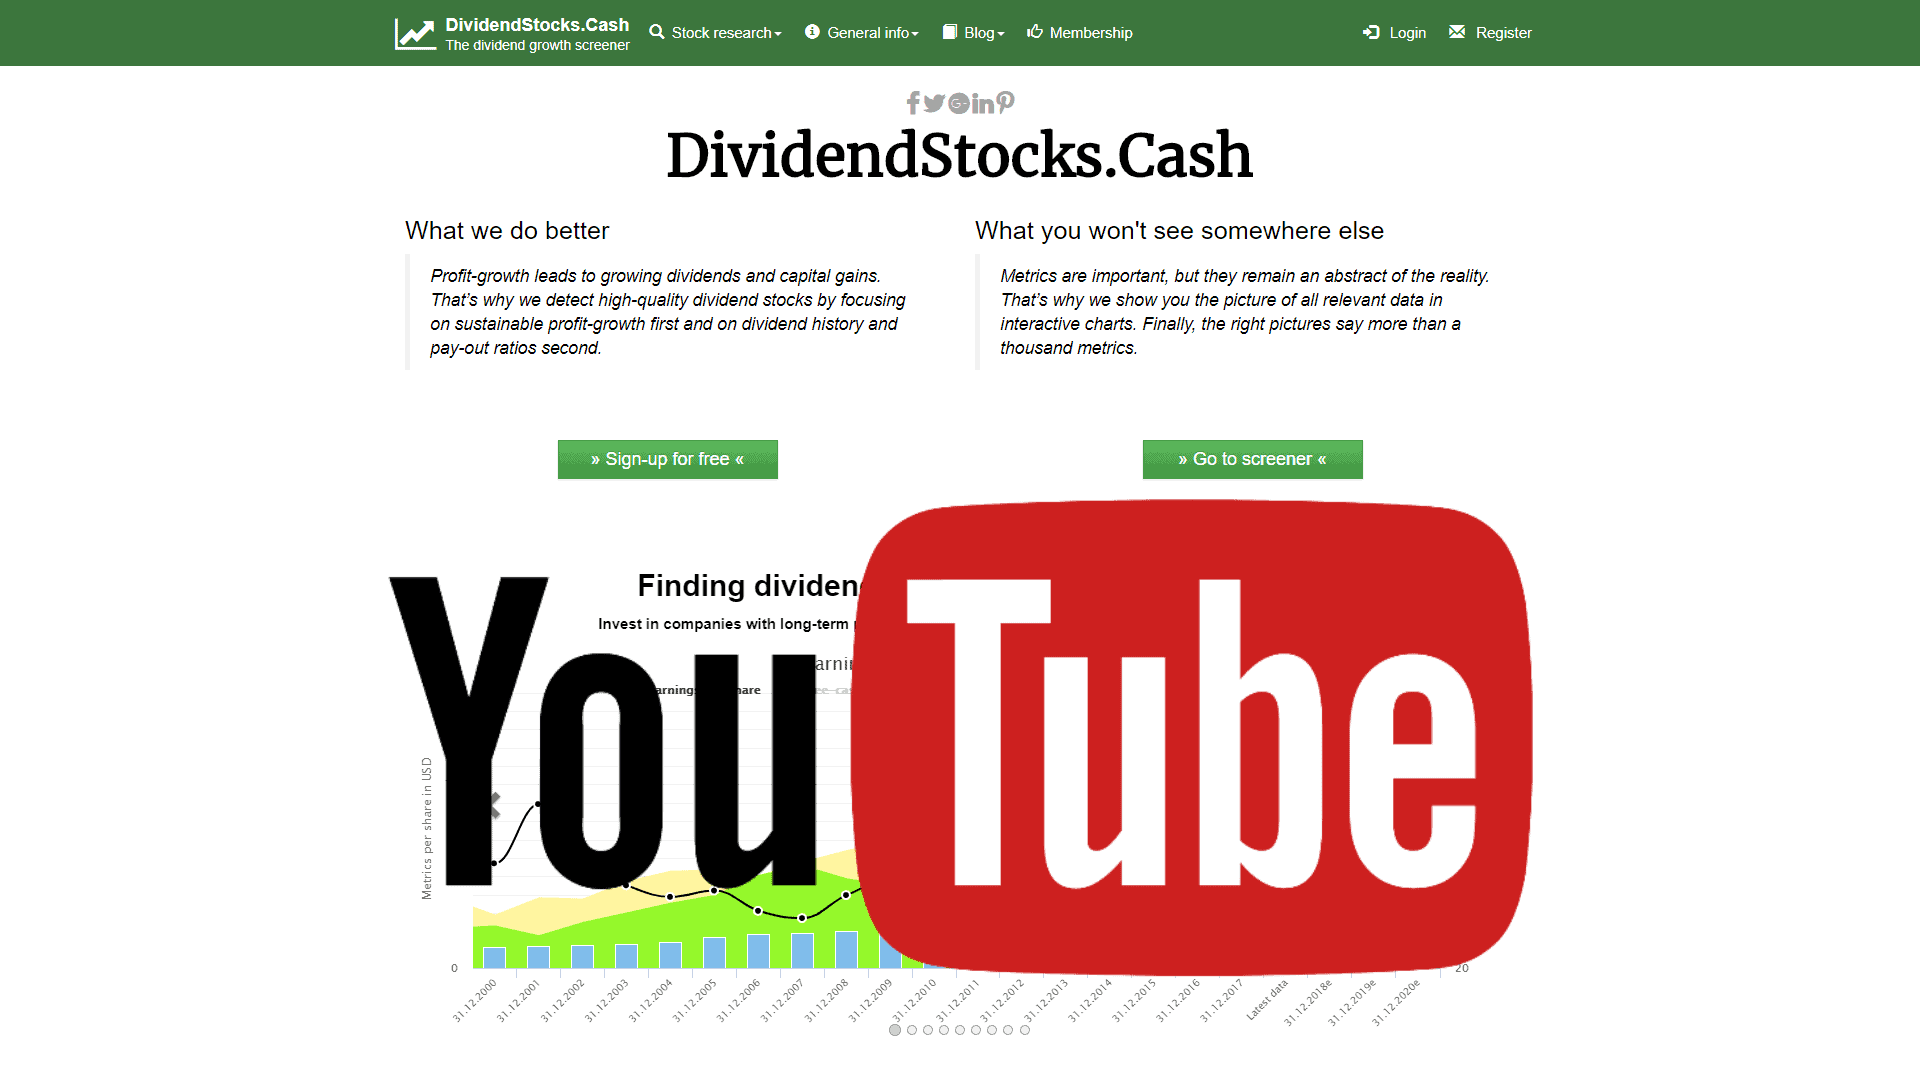 DividendStocks.Cash on YouTube